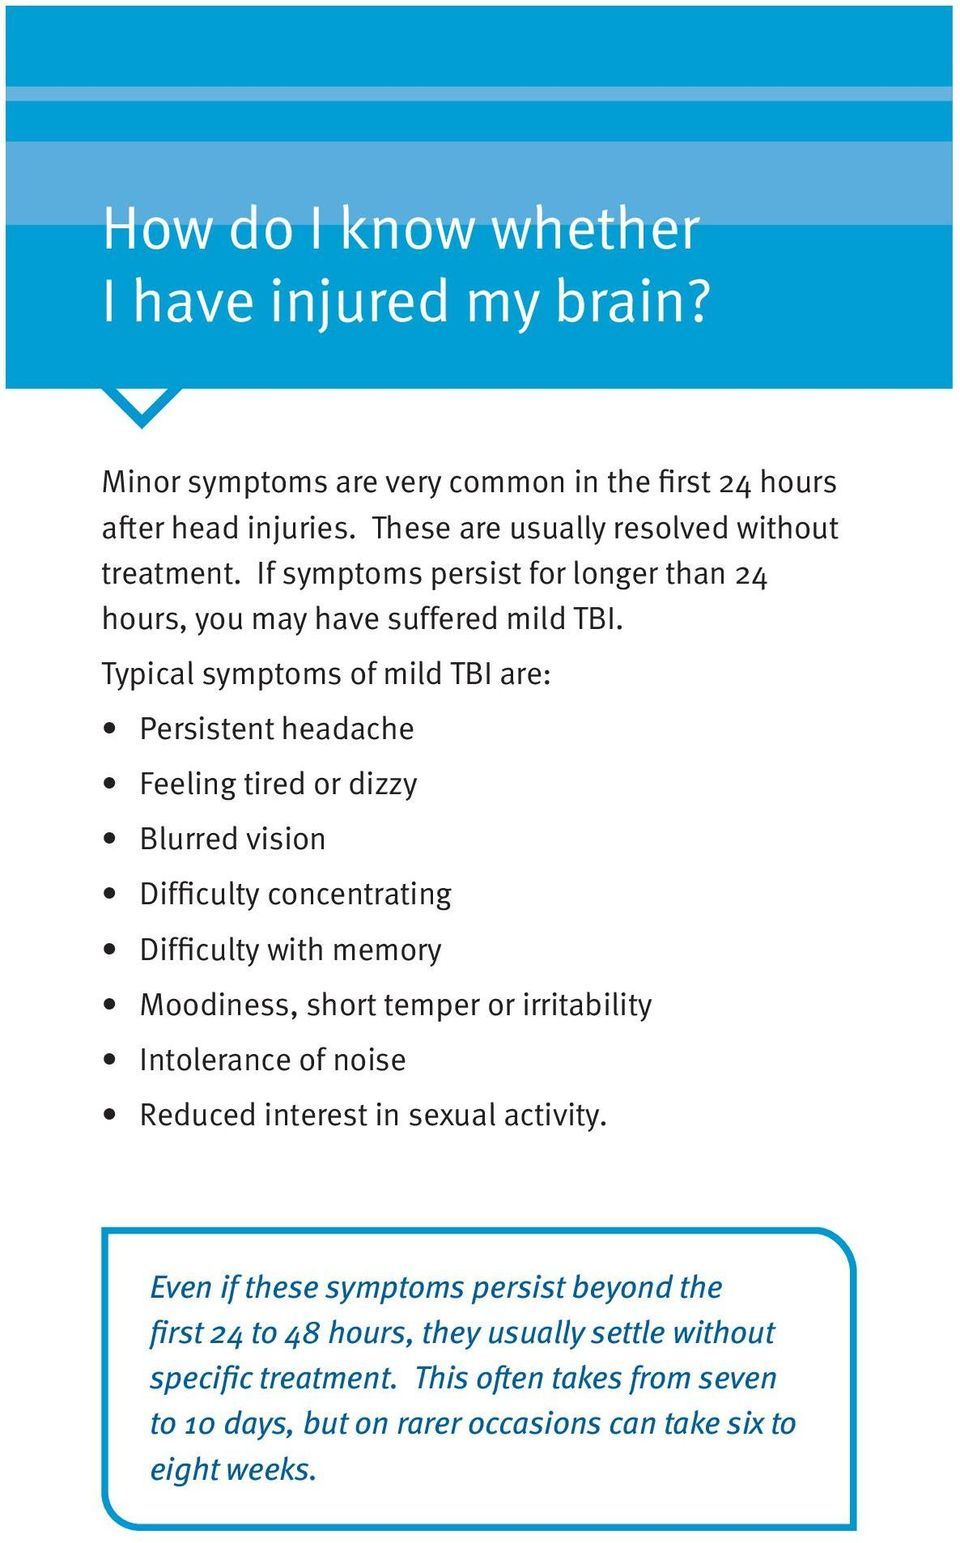 Typical symptoms of mild TBI are: Persistent headache Feeling tired or dizzy Blurred vision Difficulty concentrating Difficulty with memory Moodiness, short temper or